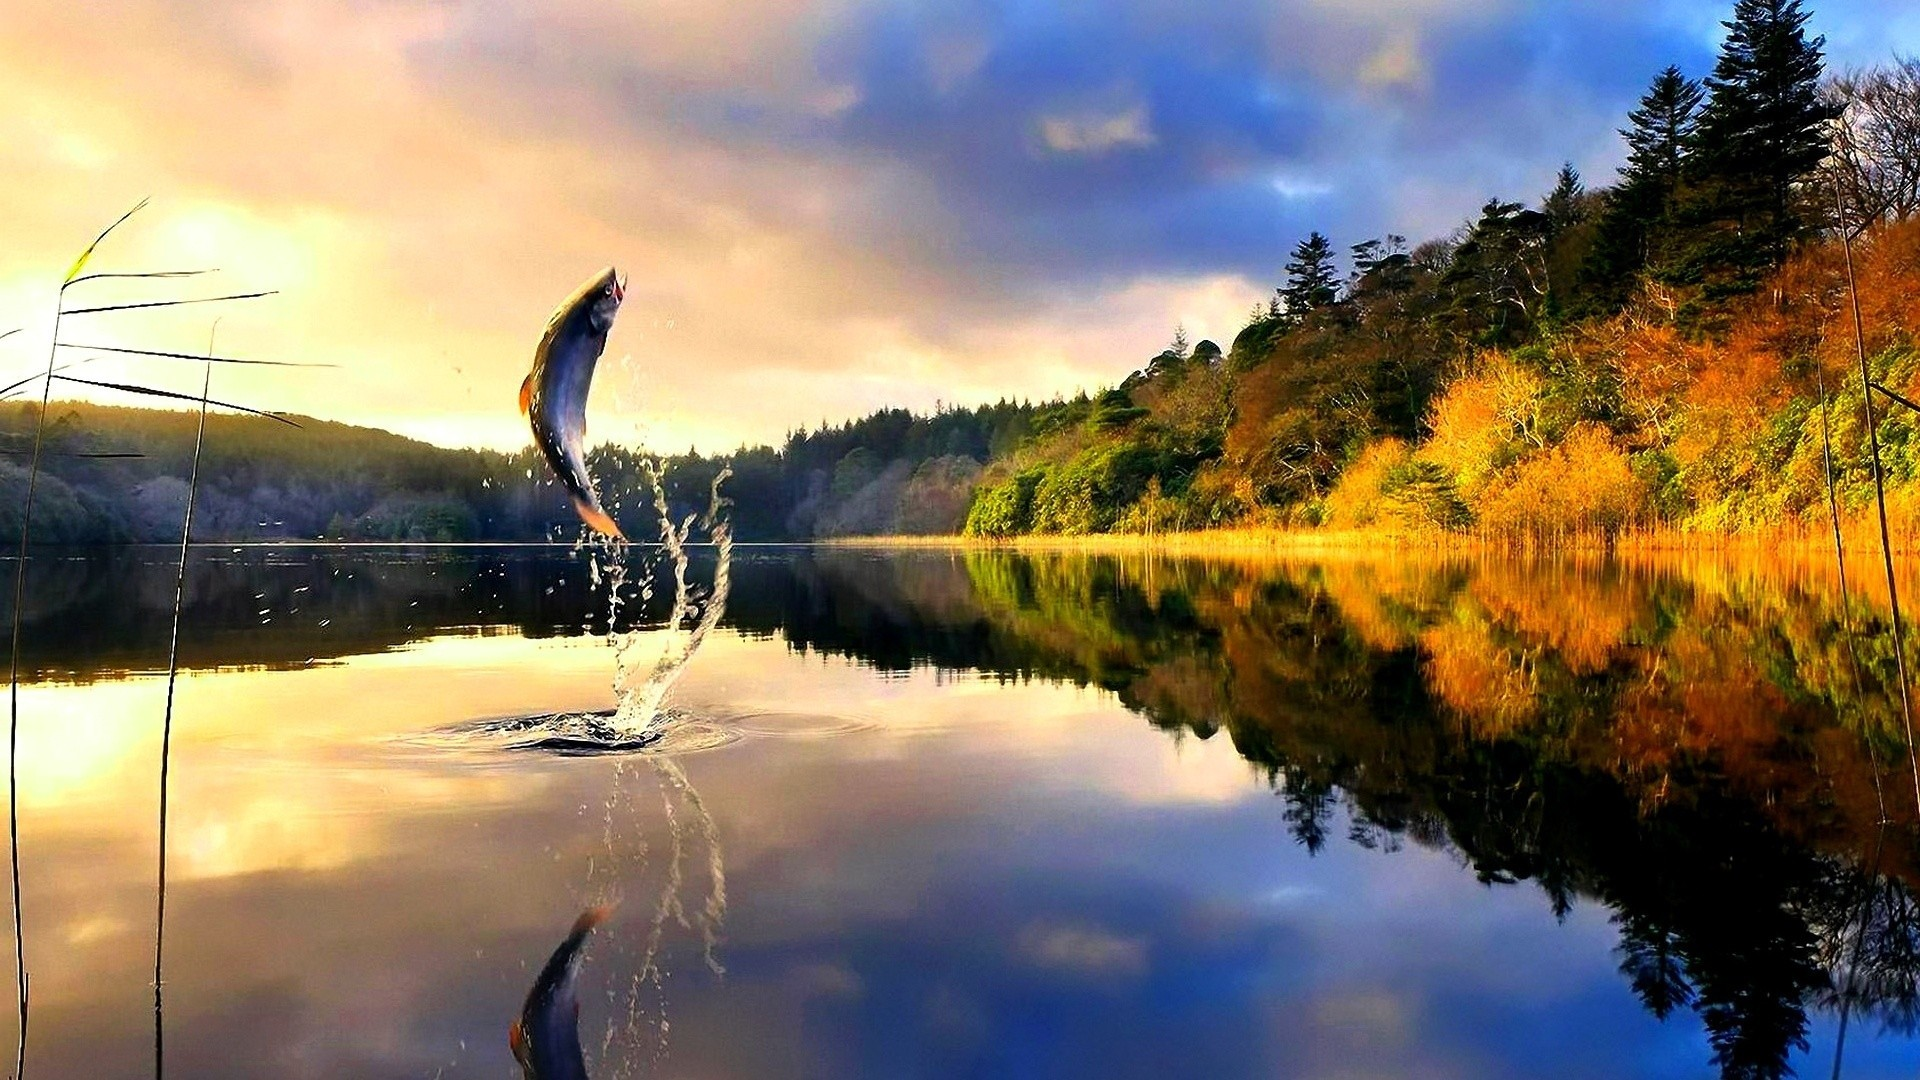 HD Fly Fishing Wallpaper 68 images 1920x1080